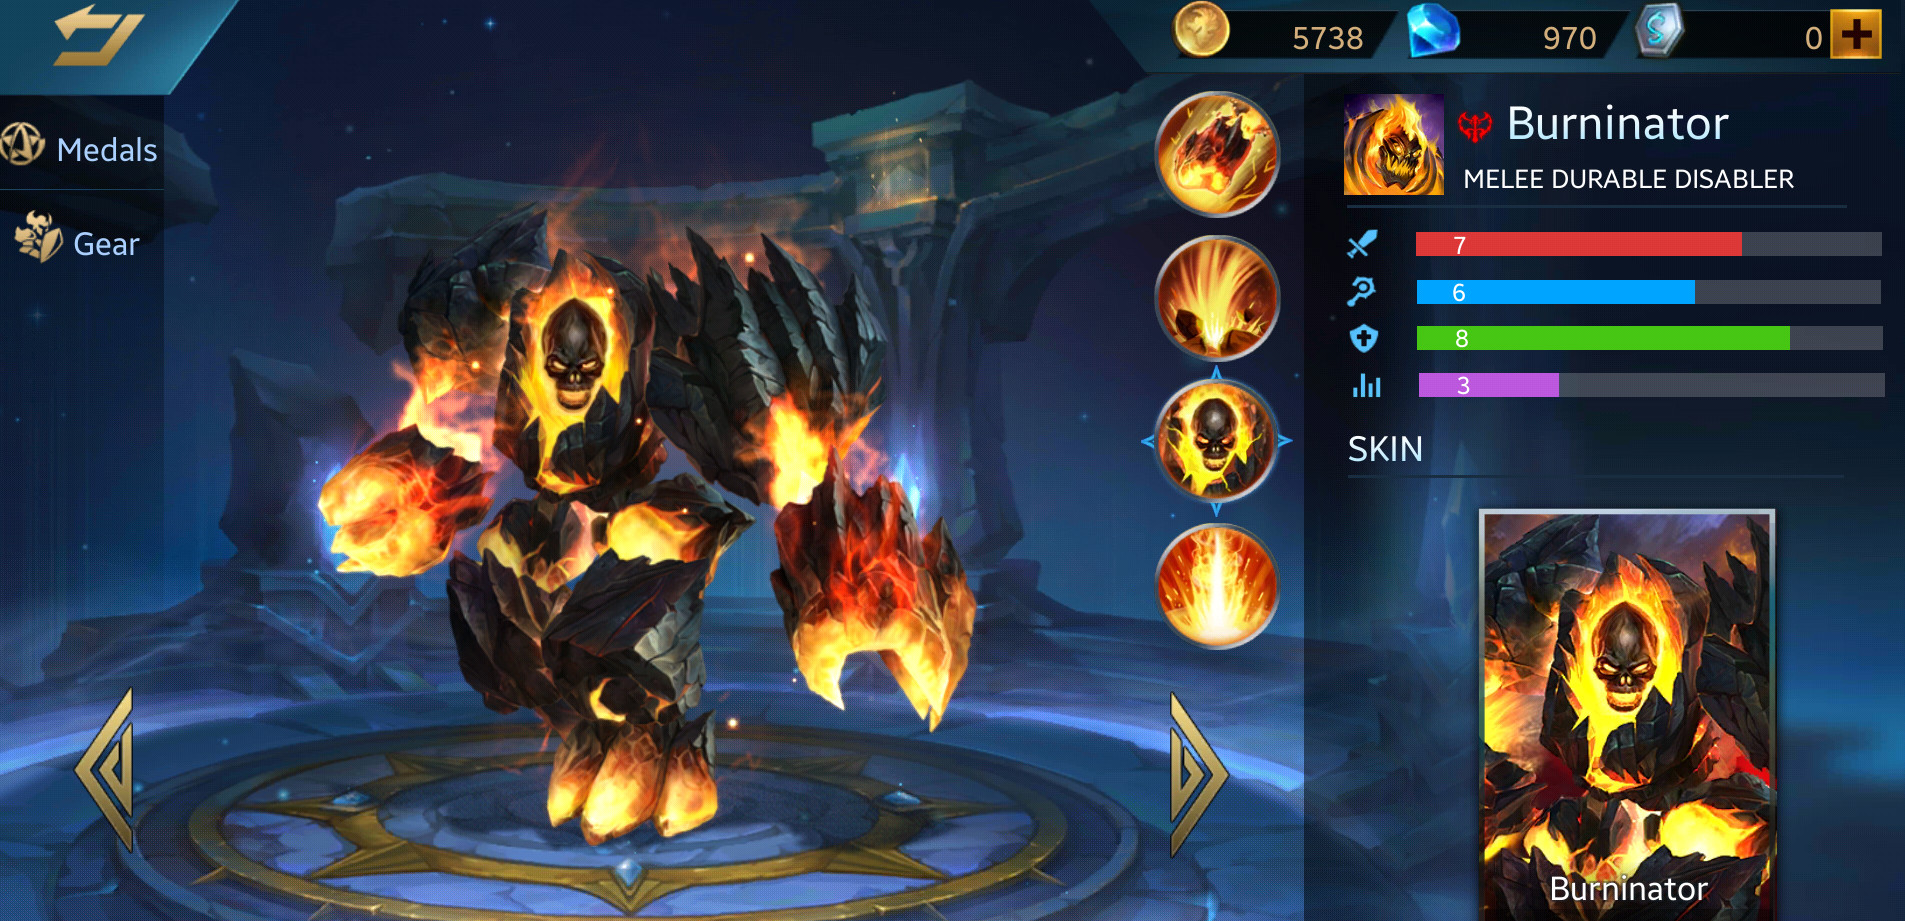 Photo of Heroes Evolved Burninator Build Guide